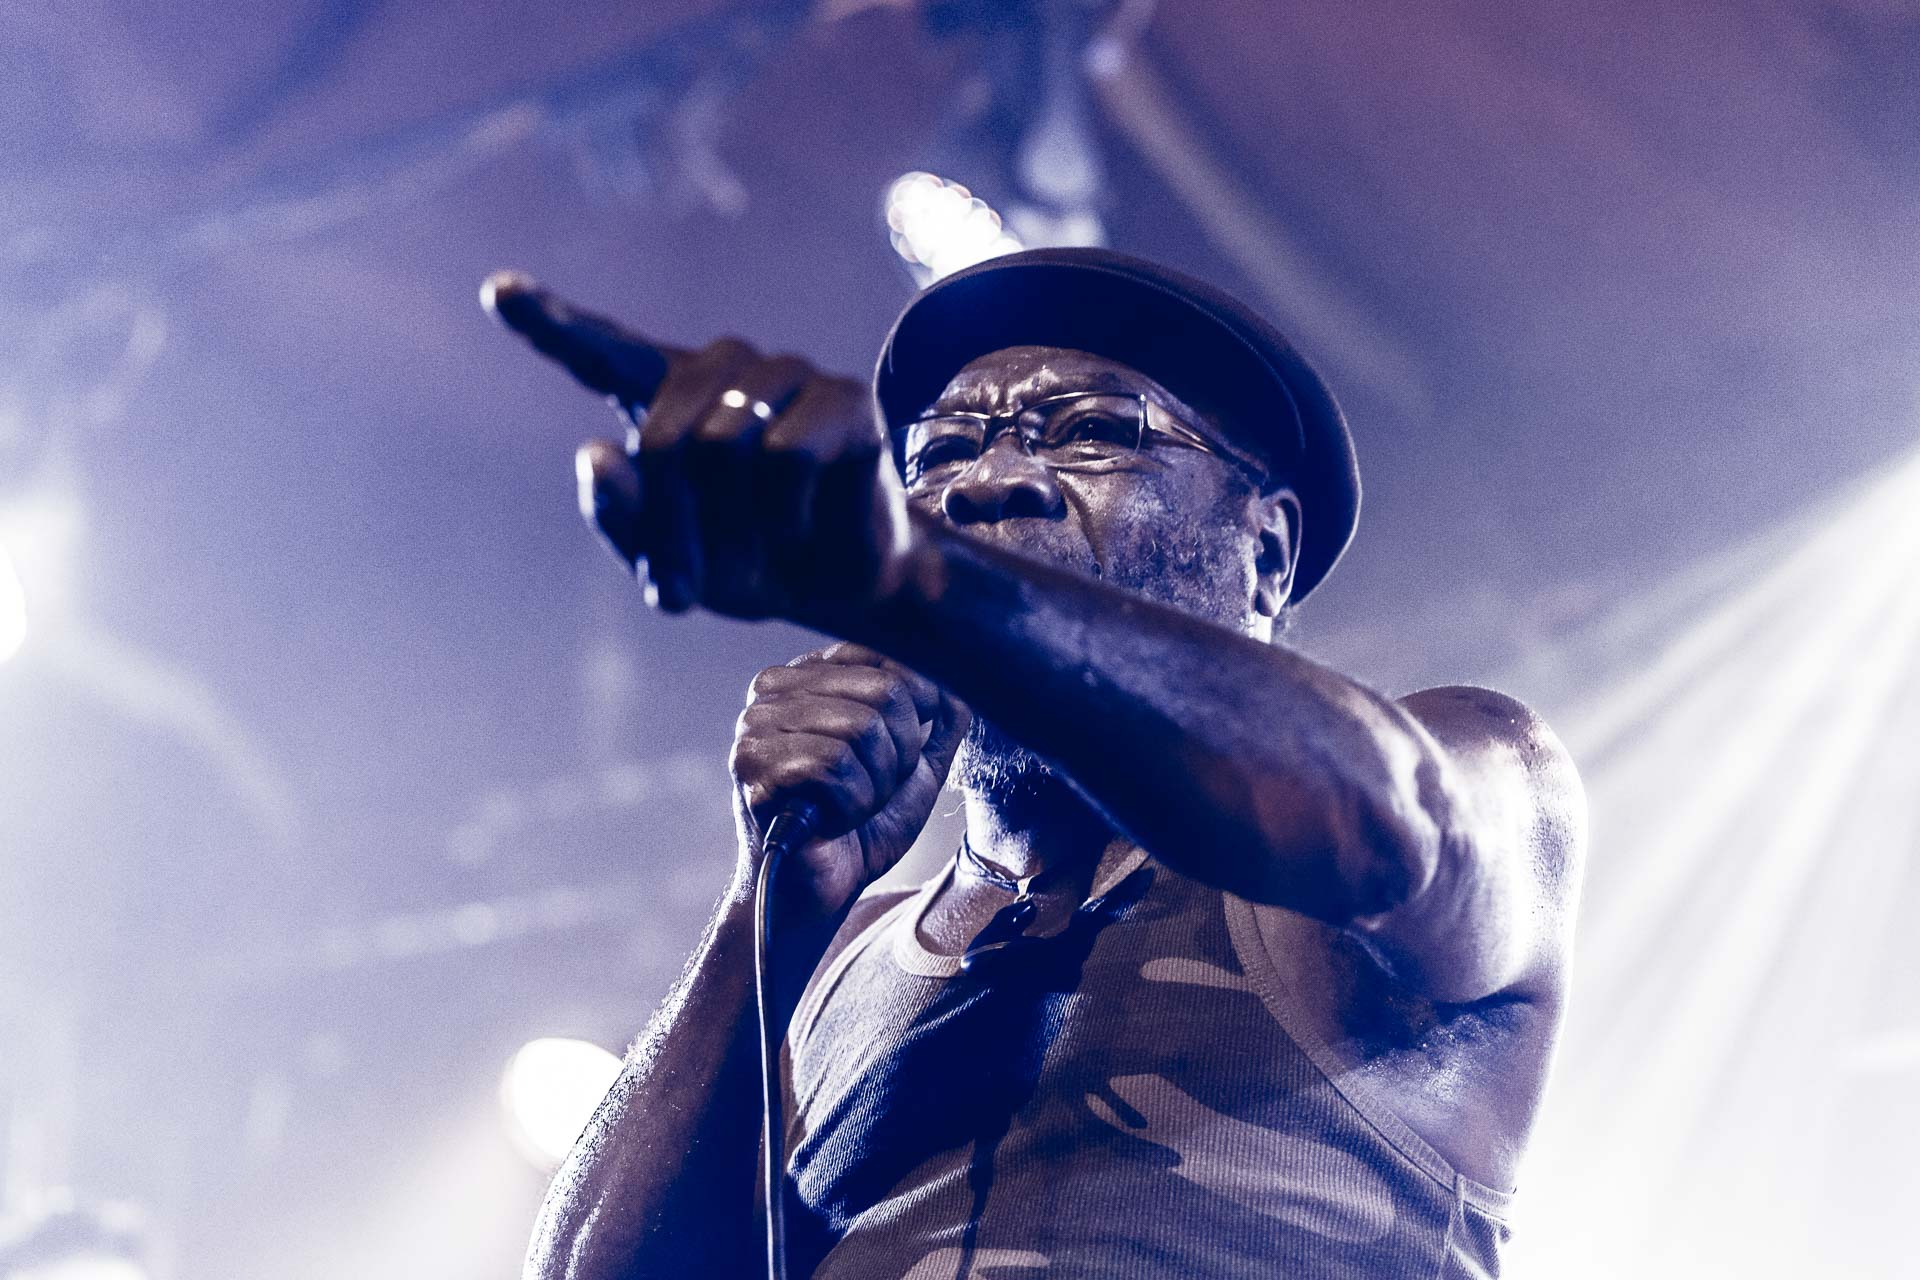 photo-concert-clinton-fearon-paris-cabaret-sauvage-2016